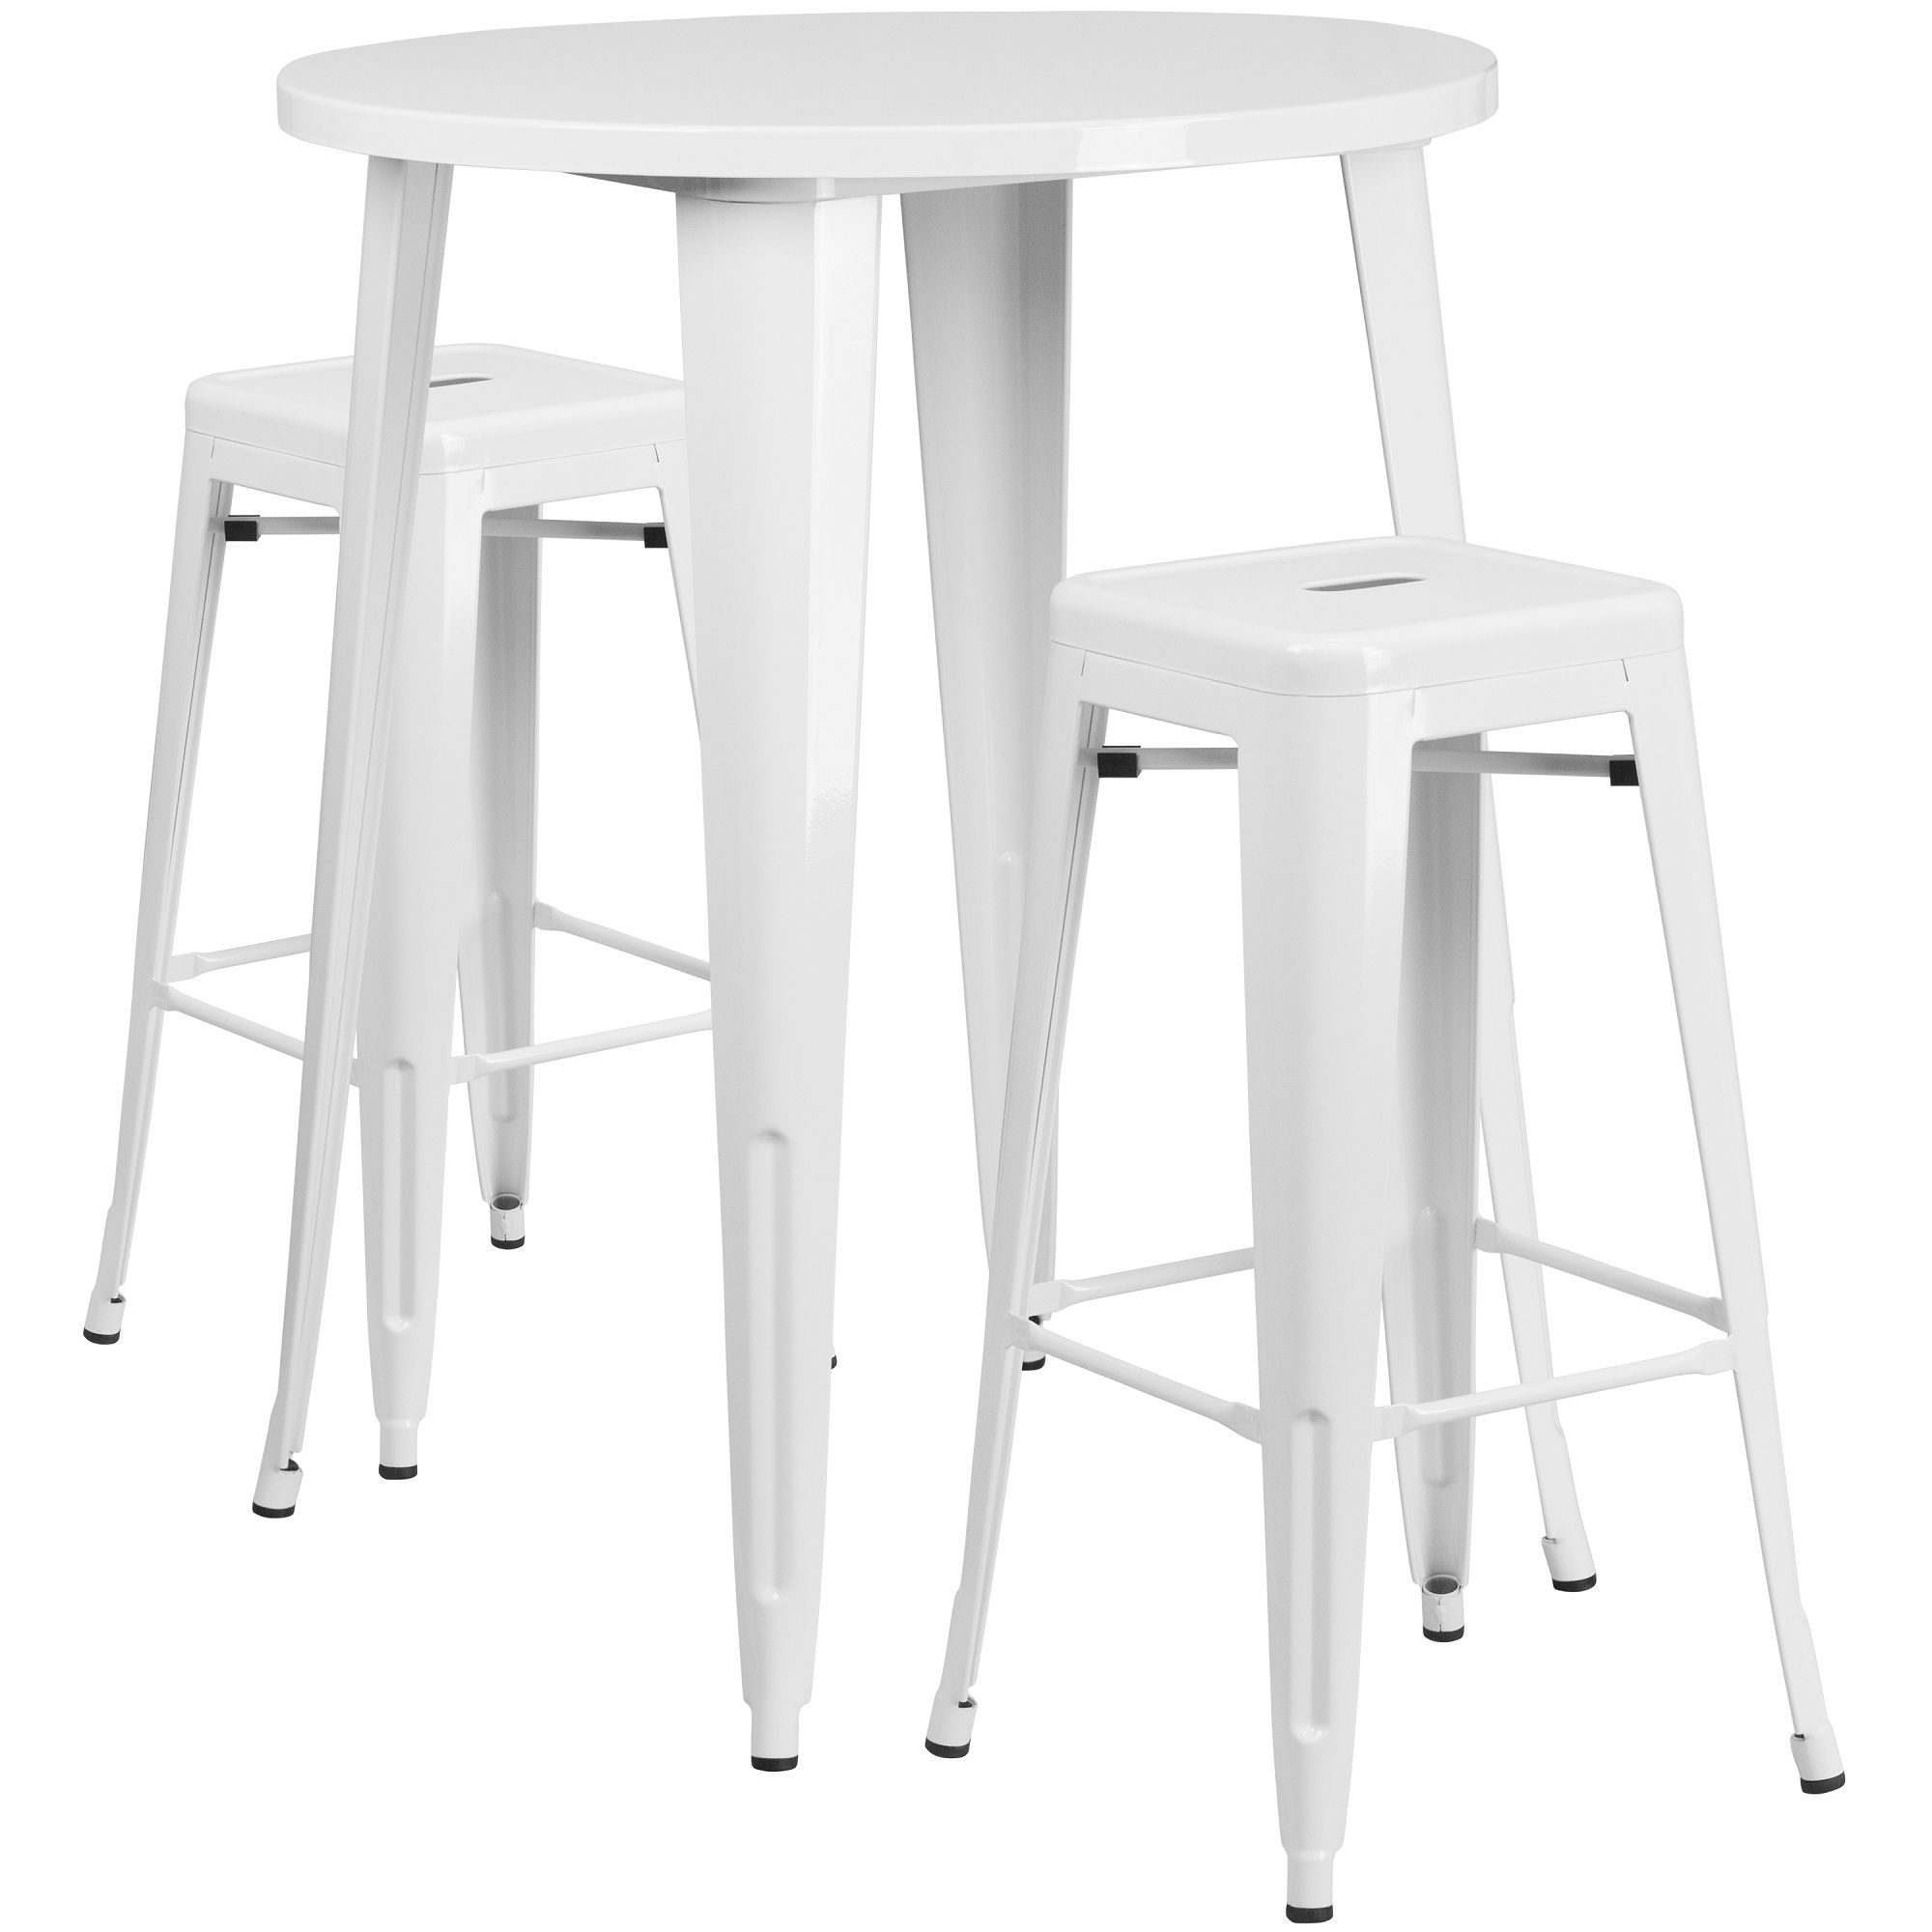 Set Of 3 White Metal Square Bar Stools And Round Bar Height Table 41 33718014 Backless Bar Stools Outdoor Bar Table Bar Table Sets